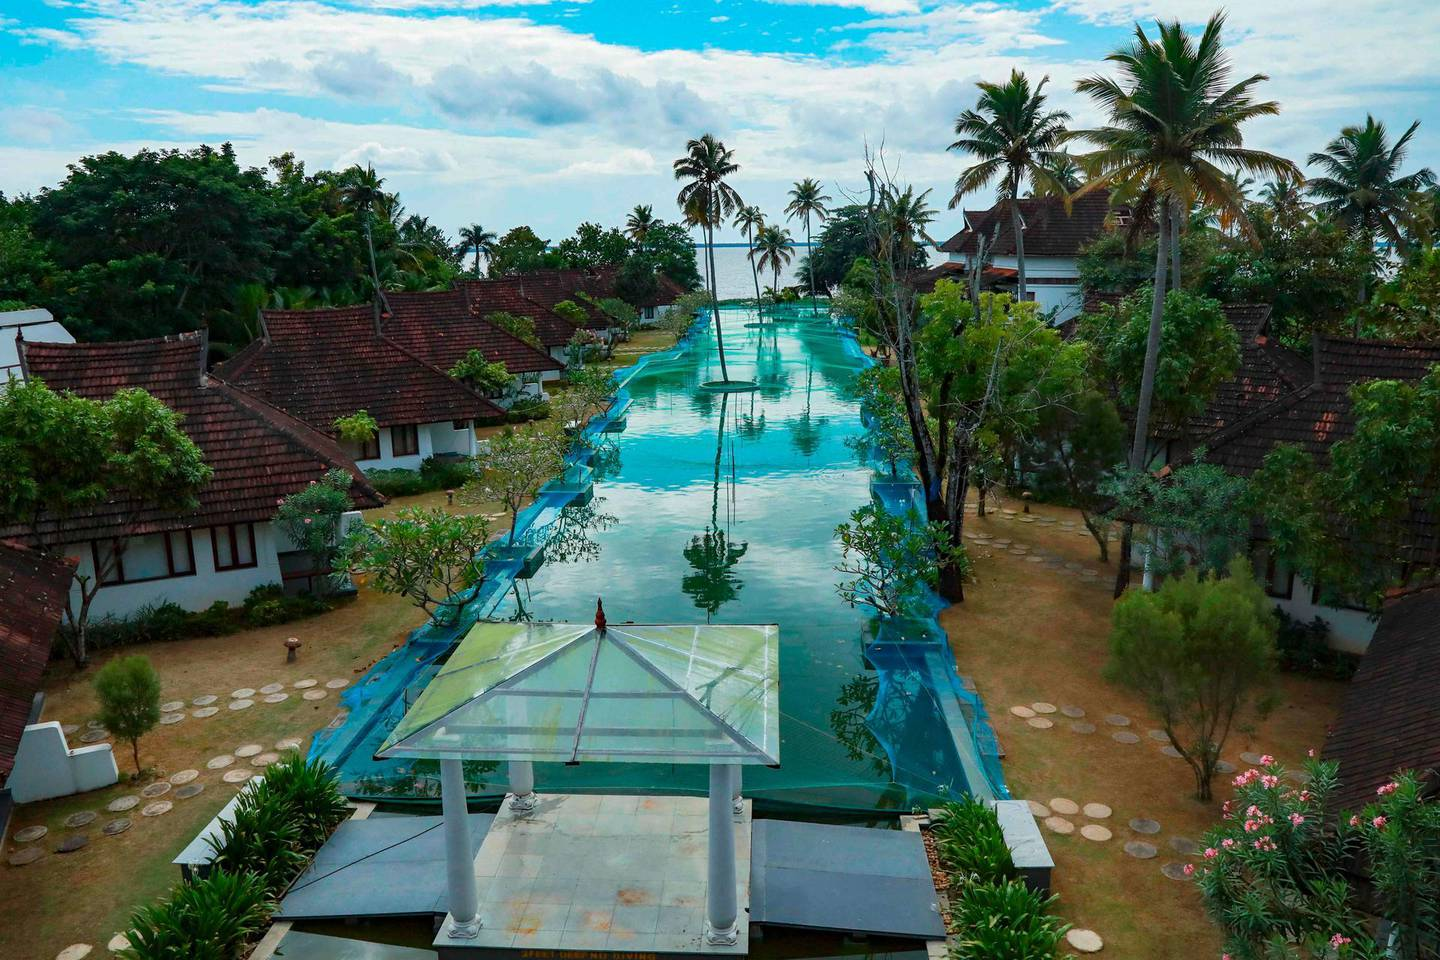 In this picture taken on August 23, 2020, a general view of a swimming pool that has been turned into a fish farm is pictured at Aveda Resort in Kumarakom, in Kerala state. A luxury resort in southern India has turned its swimming pool into a fish farm to stop the business sinking amid the pandemic economic crisis. Normally the 150 metre (500 feet) long swimming pool at the Aveda Resort in Kerala state is packed with European tourists. Now thousands of pearl spot fish are causing the splash. / AFP / Arun CHANDRABOSE